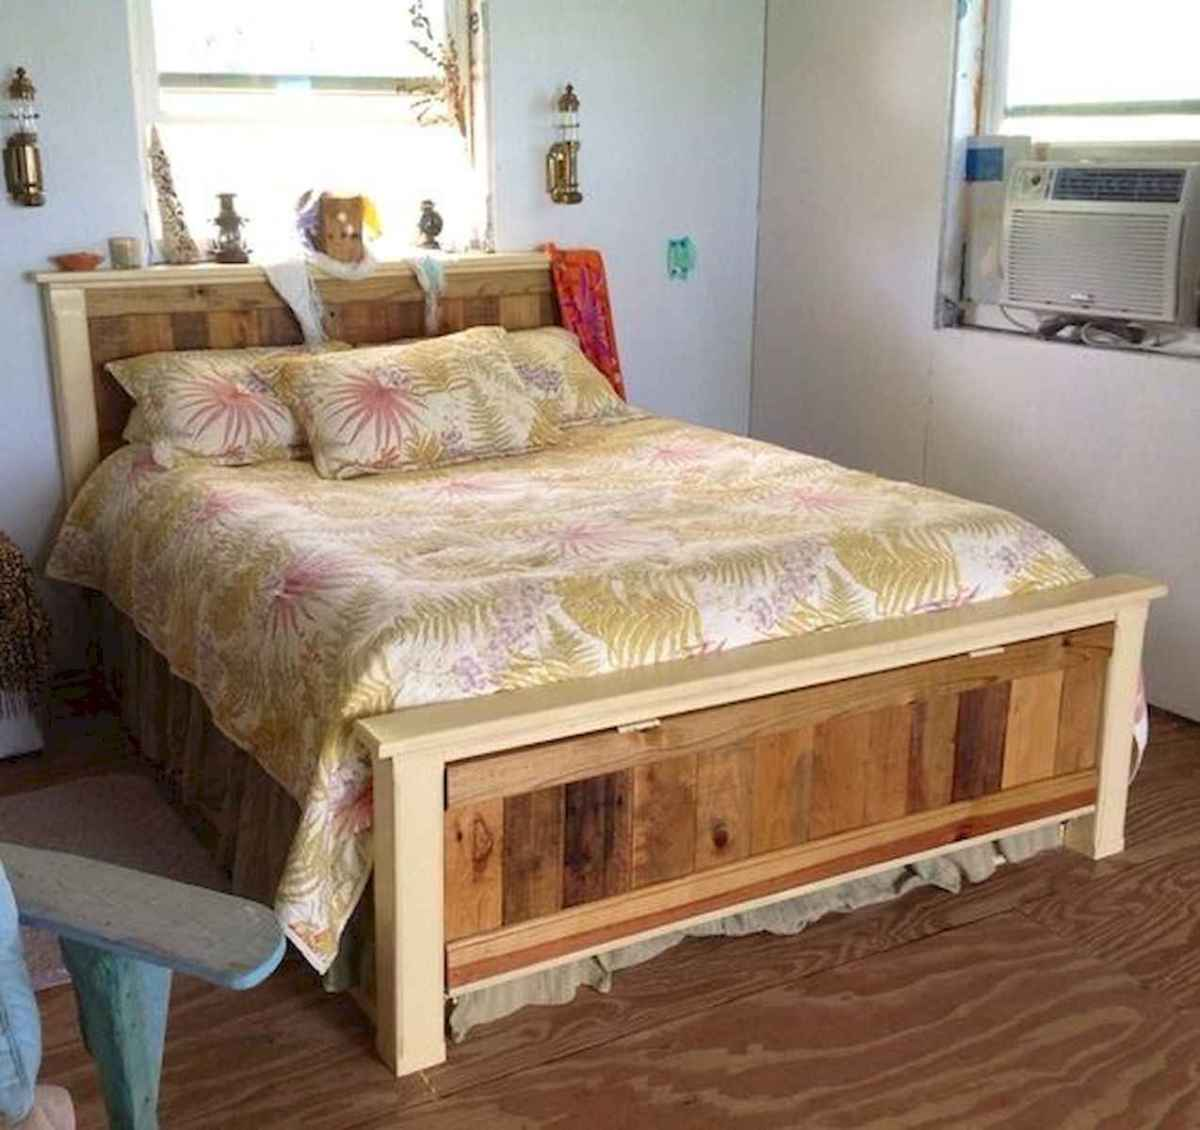 50 Creative Recycled DIY Projects Pallet Beds Design Ideas (31)